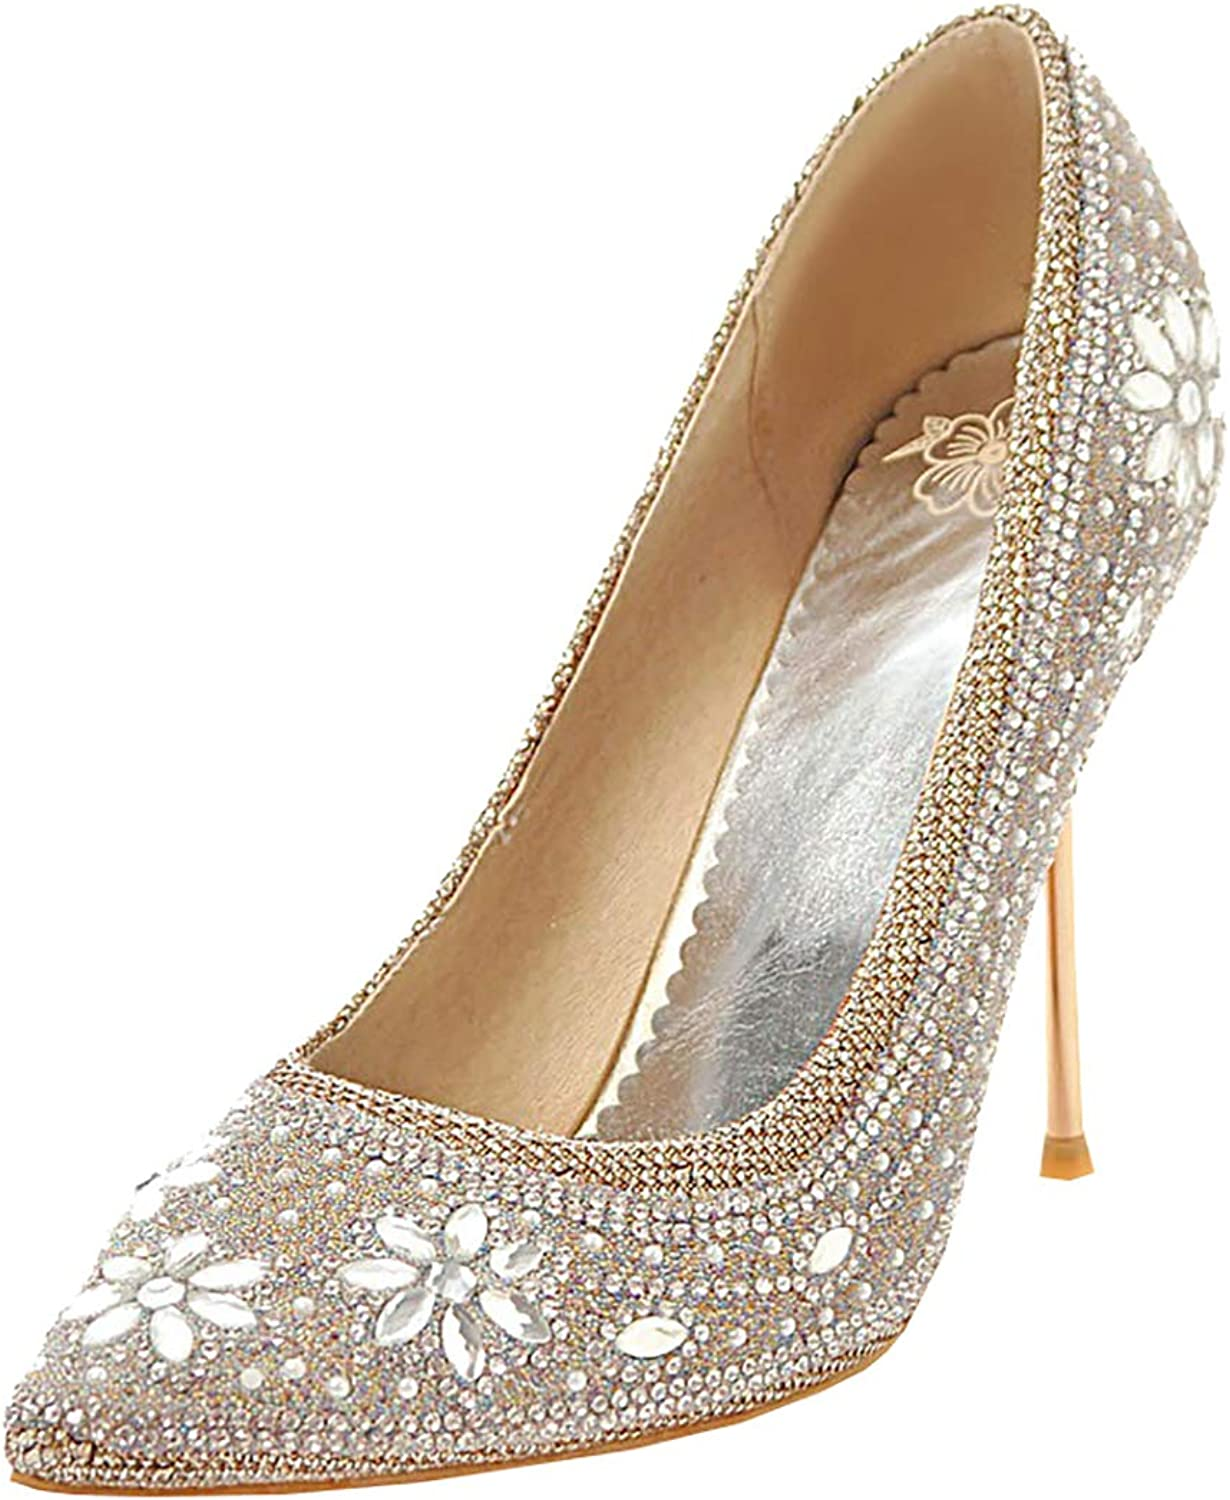 Artfaerie Womens Crystal Rhinestone Pointed Toe Stiletto High Heel Sequin Pumps Glitter Bridal Wedding Court shoes